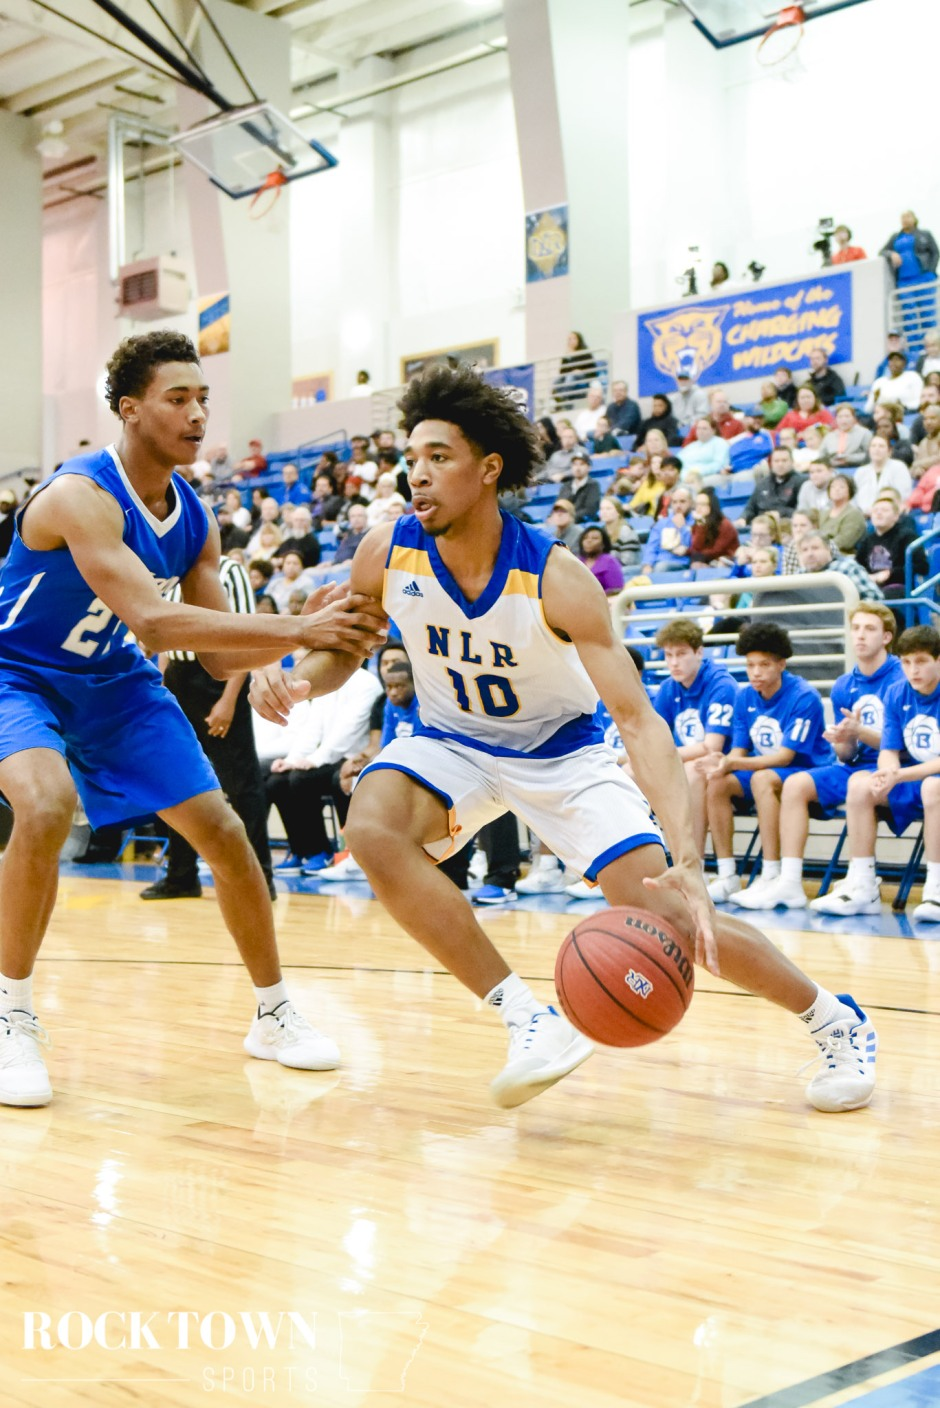 nlr_bryant_basketball_2019-145